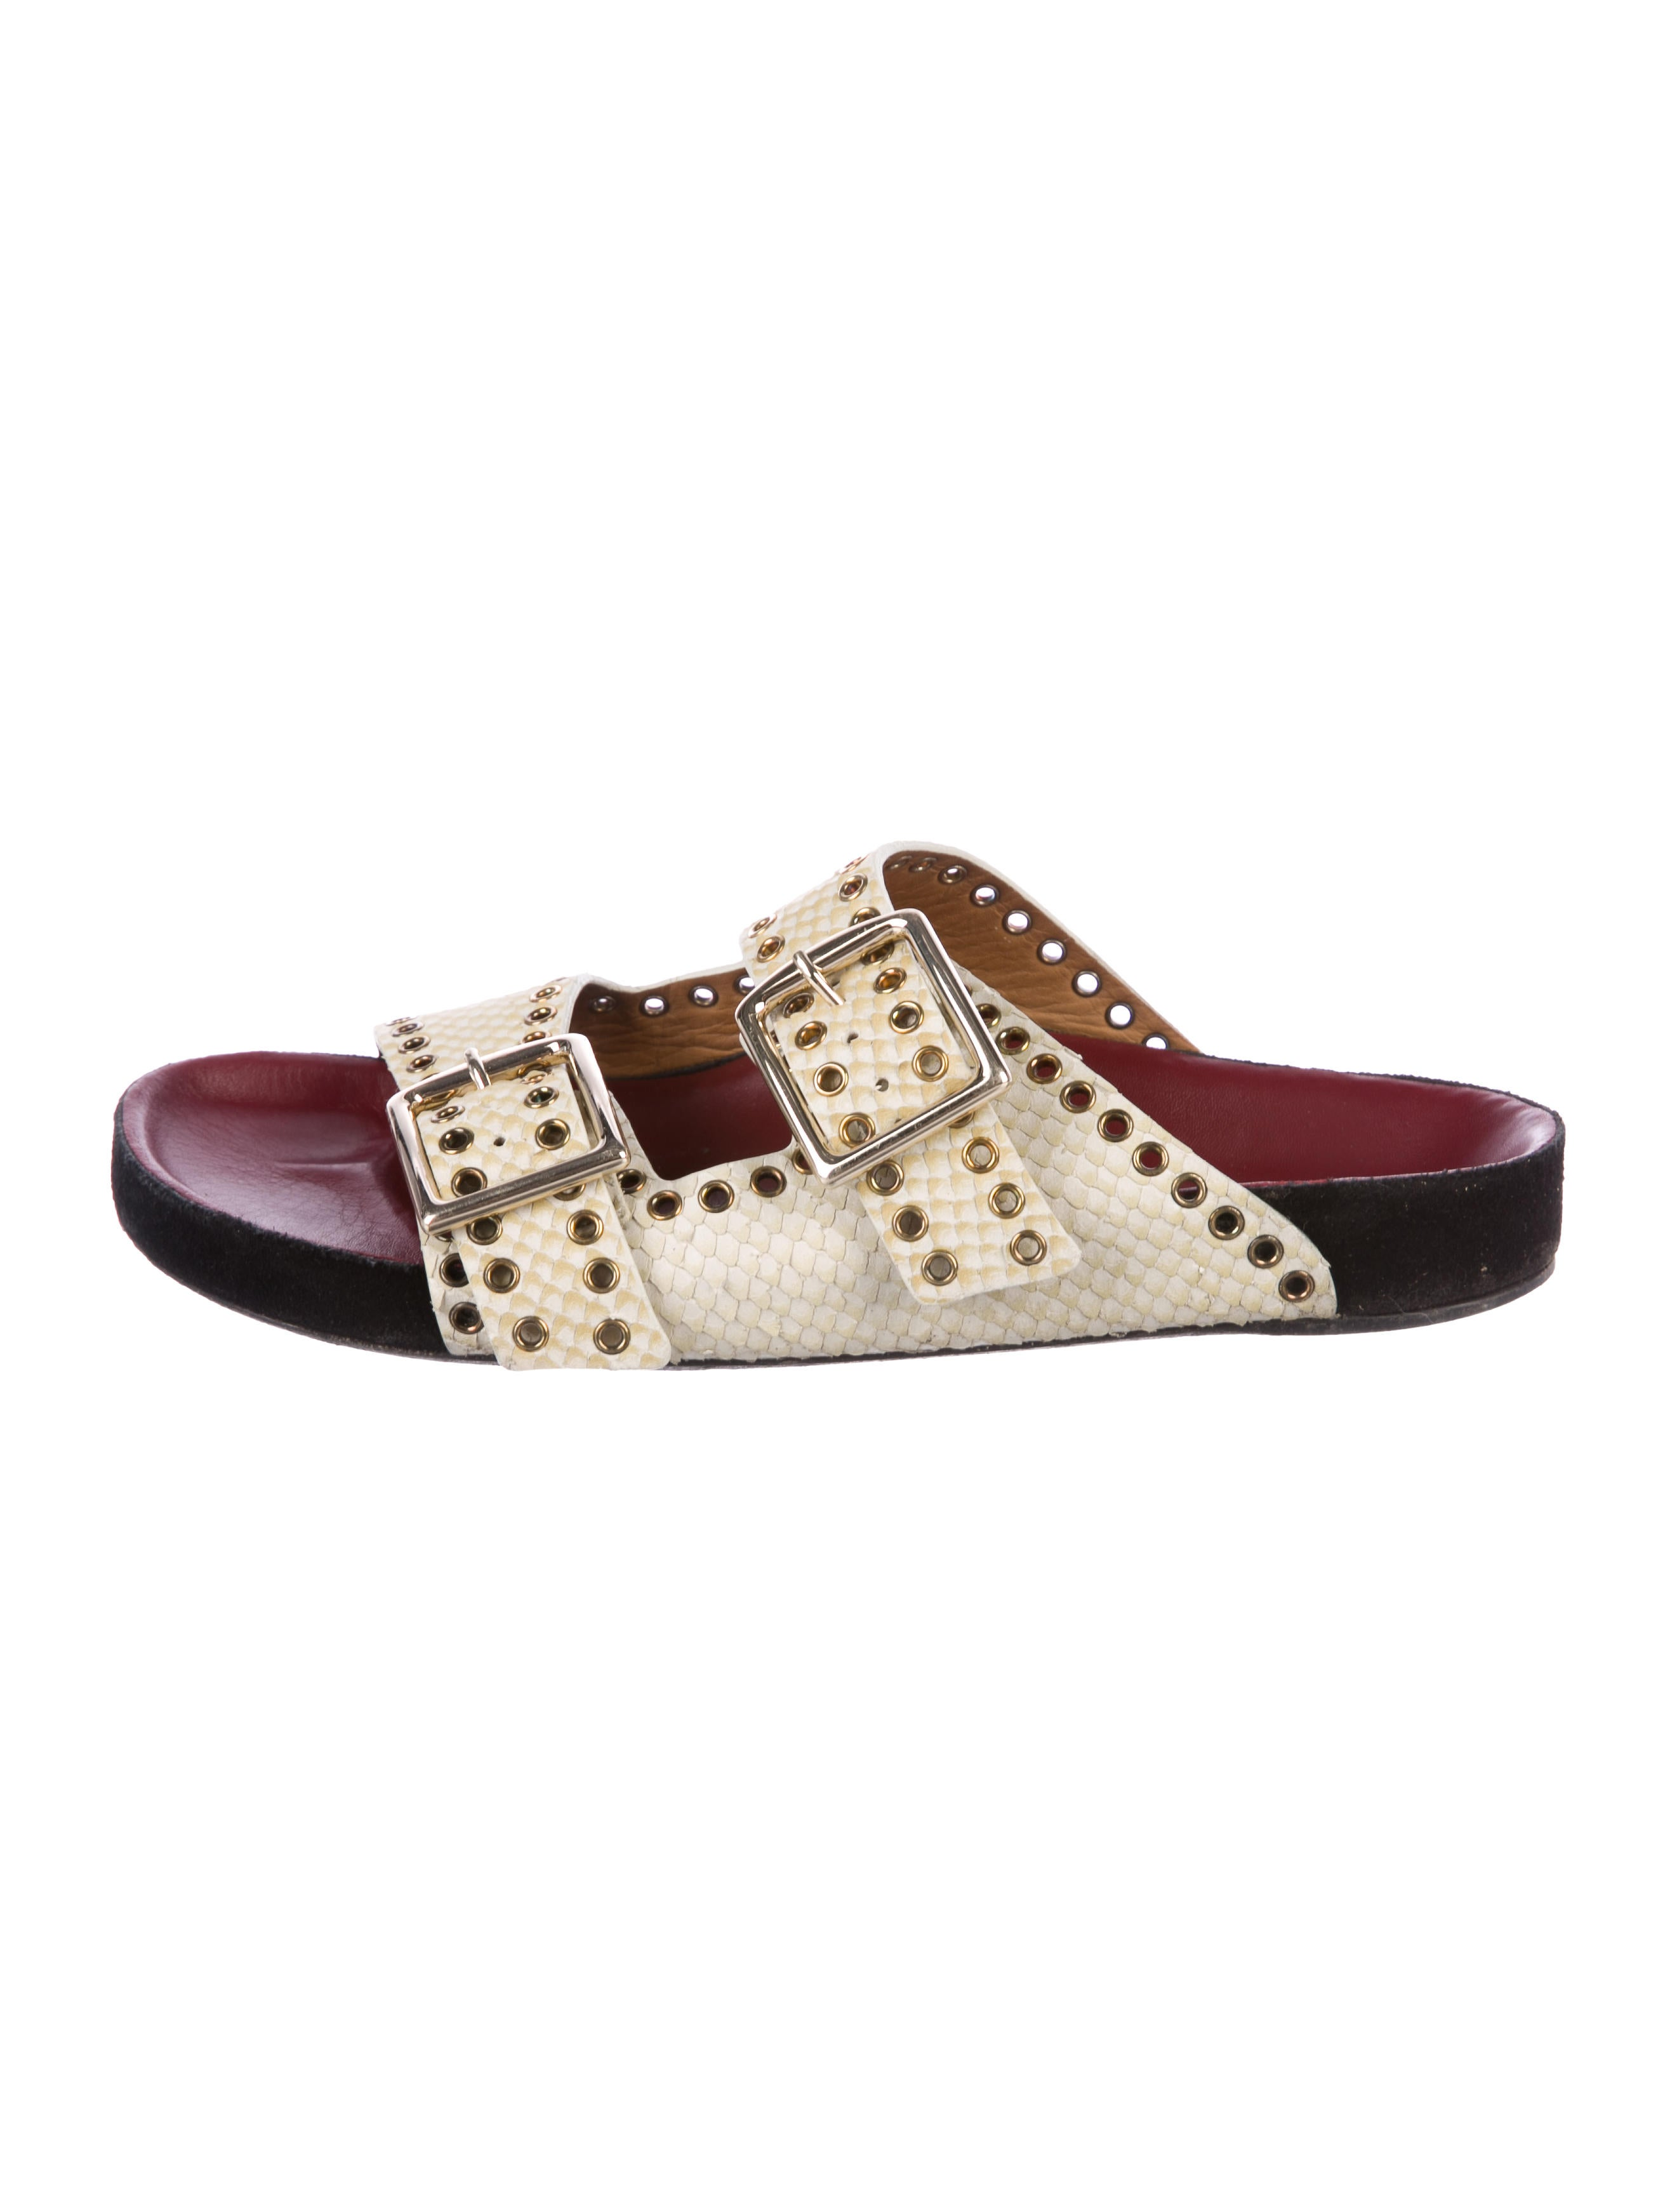 deals for sale clearance 2014 new Isabel Marant Embossed Lenny Sandals low price fee shipping cheap online pUQzosREOV